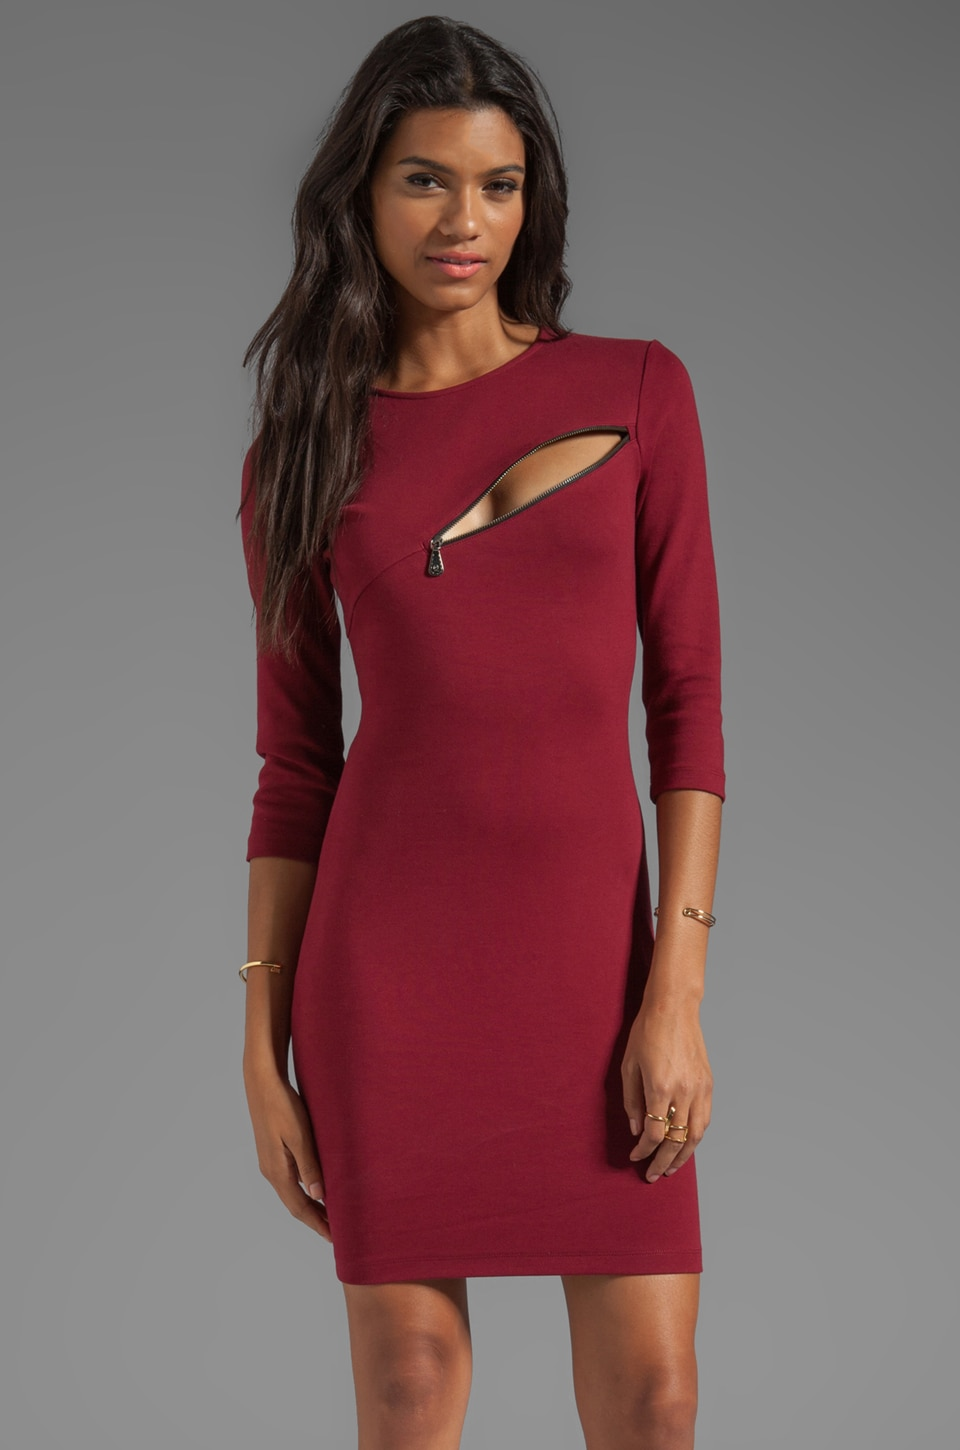 McQ Alexander McQueen 3/4 Sleeve Zip Dress in Oxblood